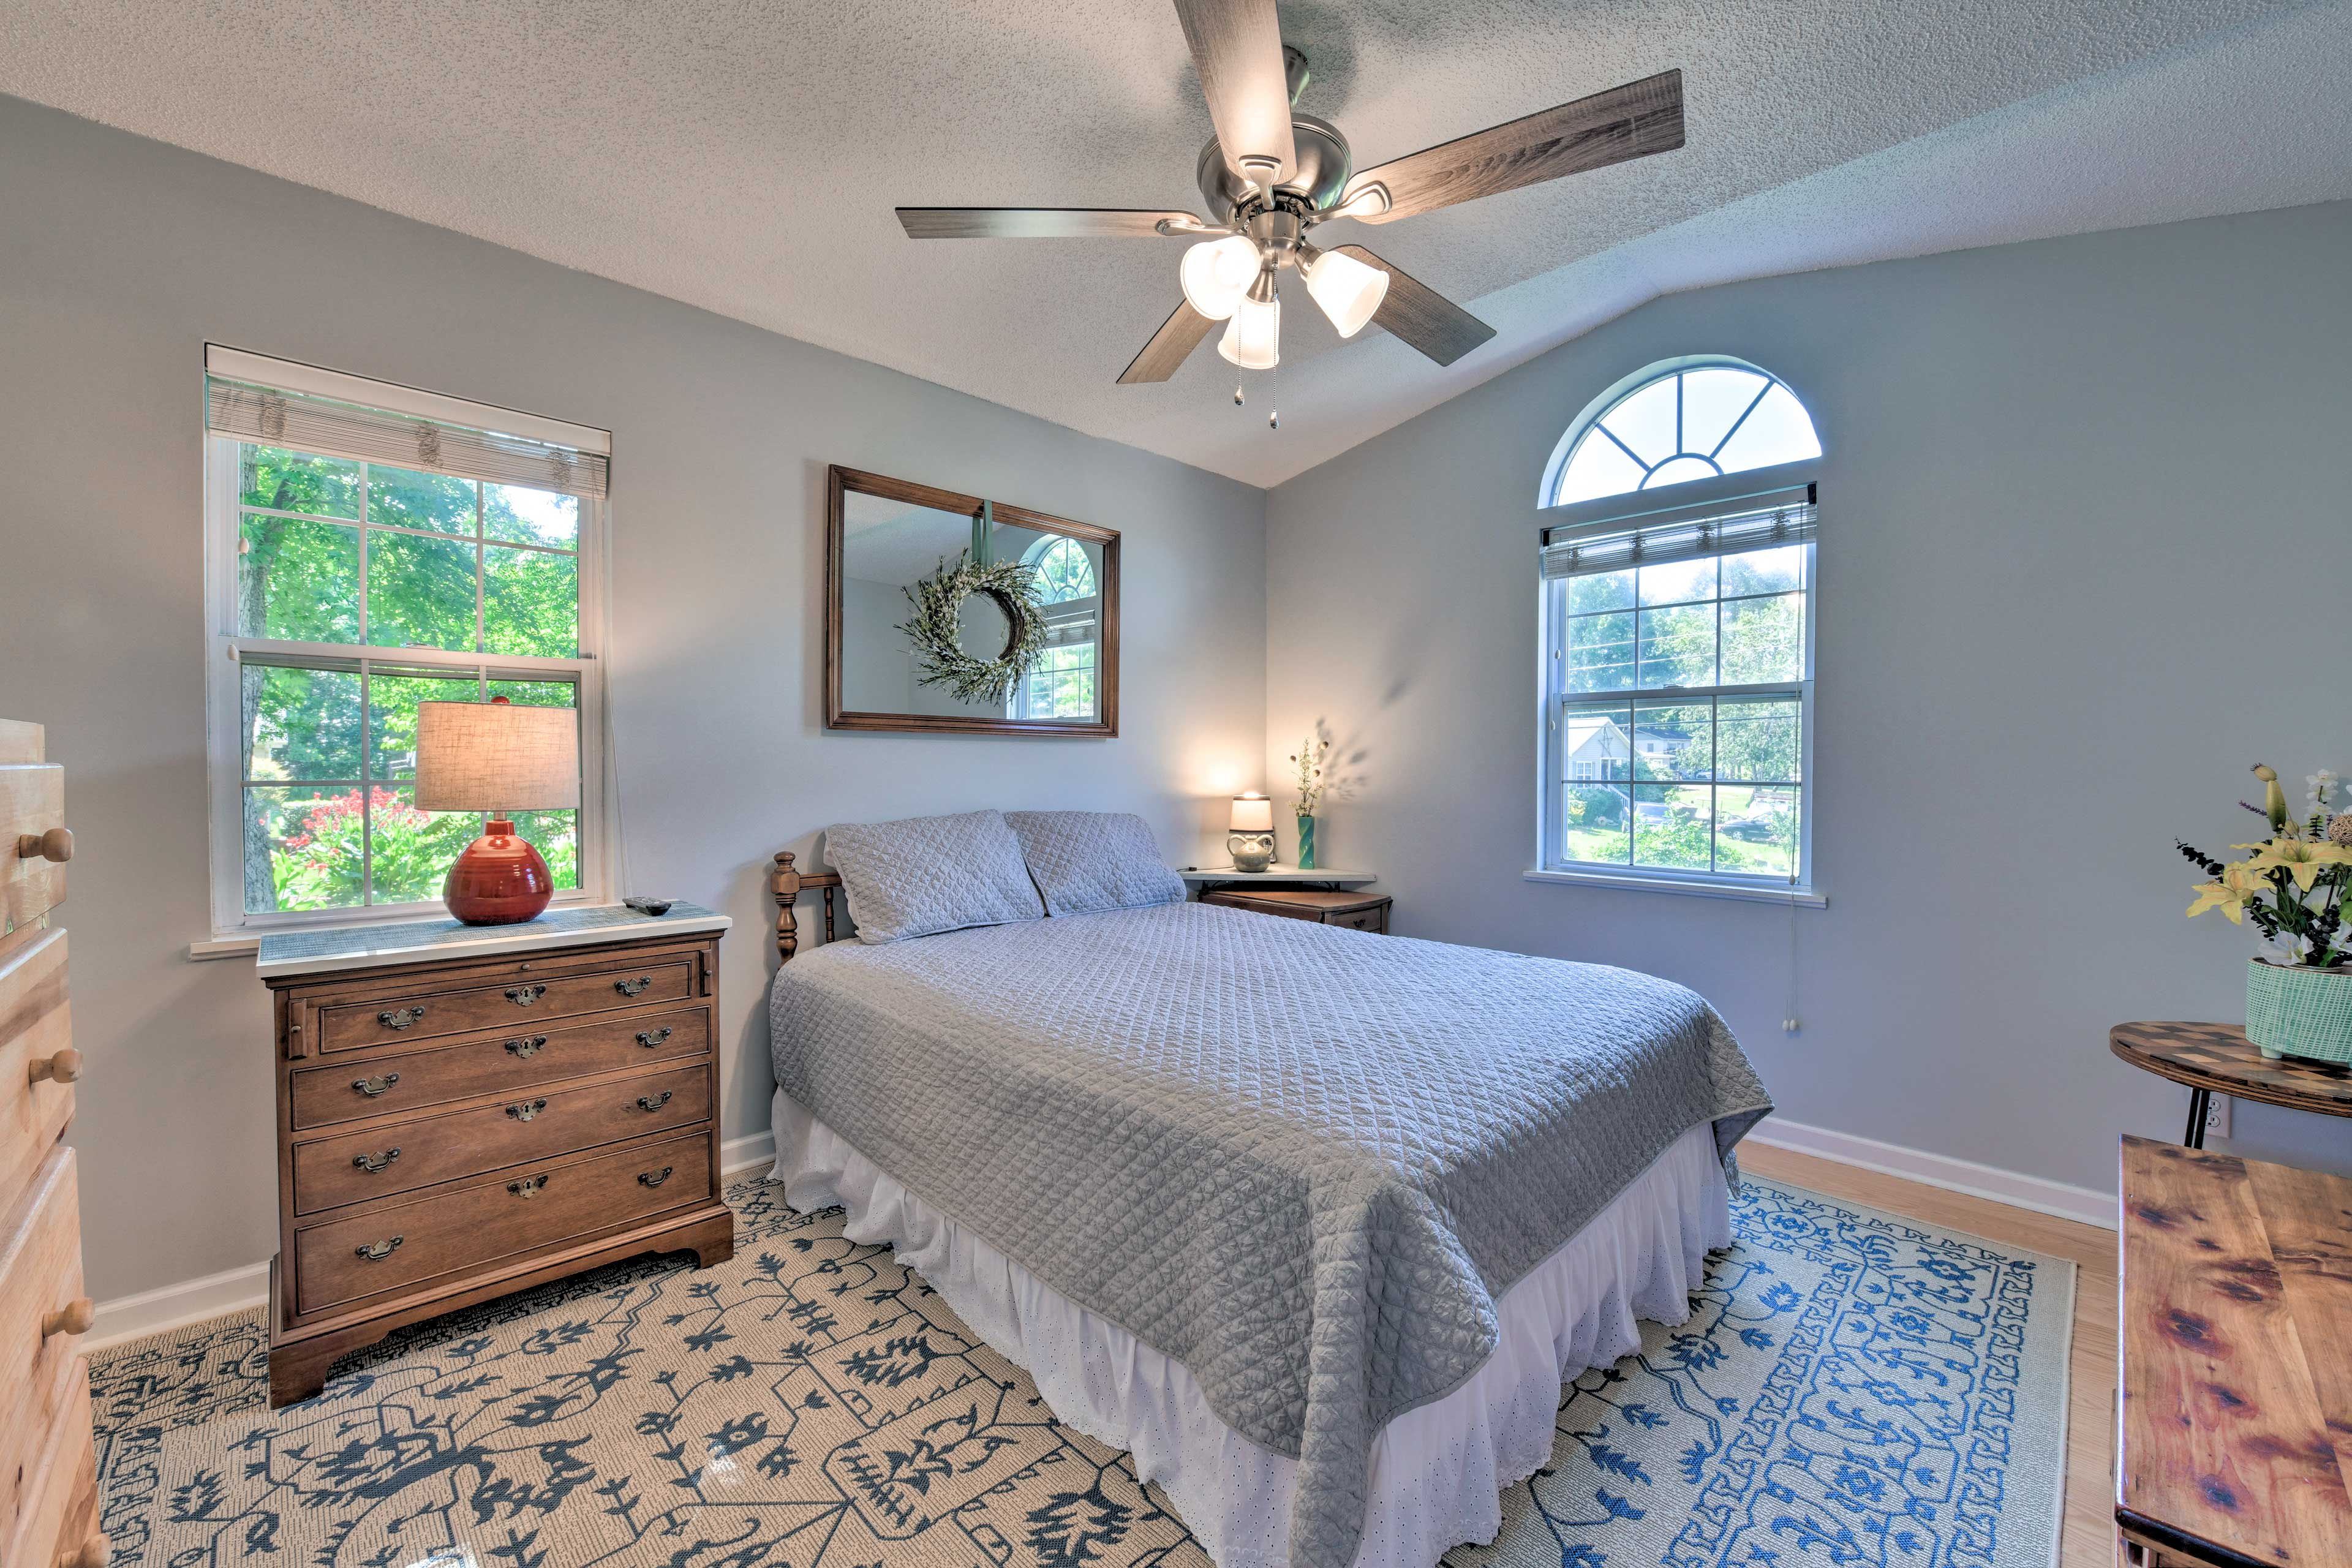 You'll have no problem relaxing in this lovely master bedroom.